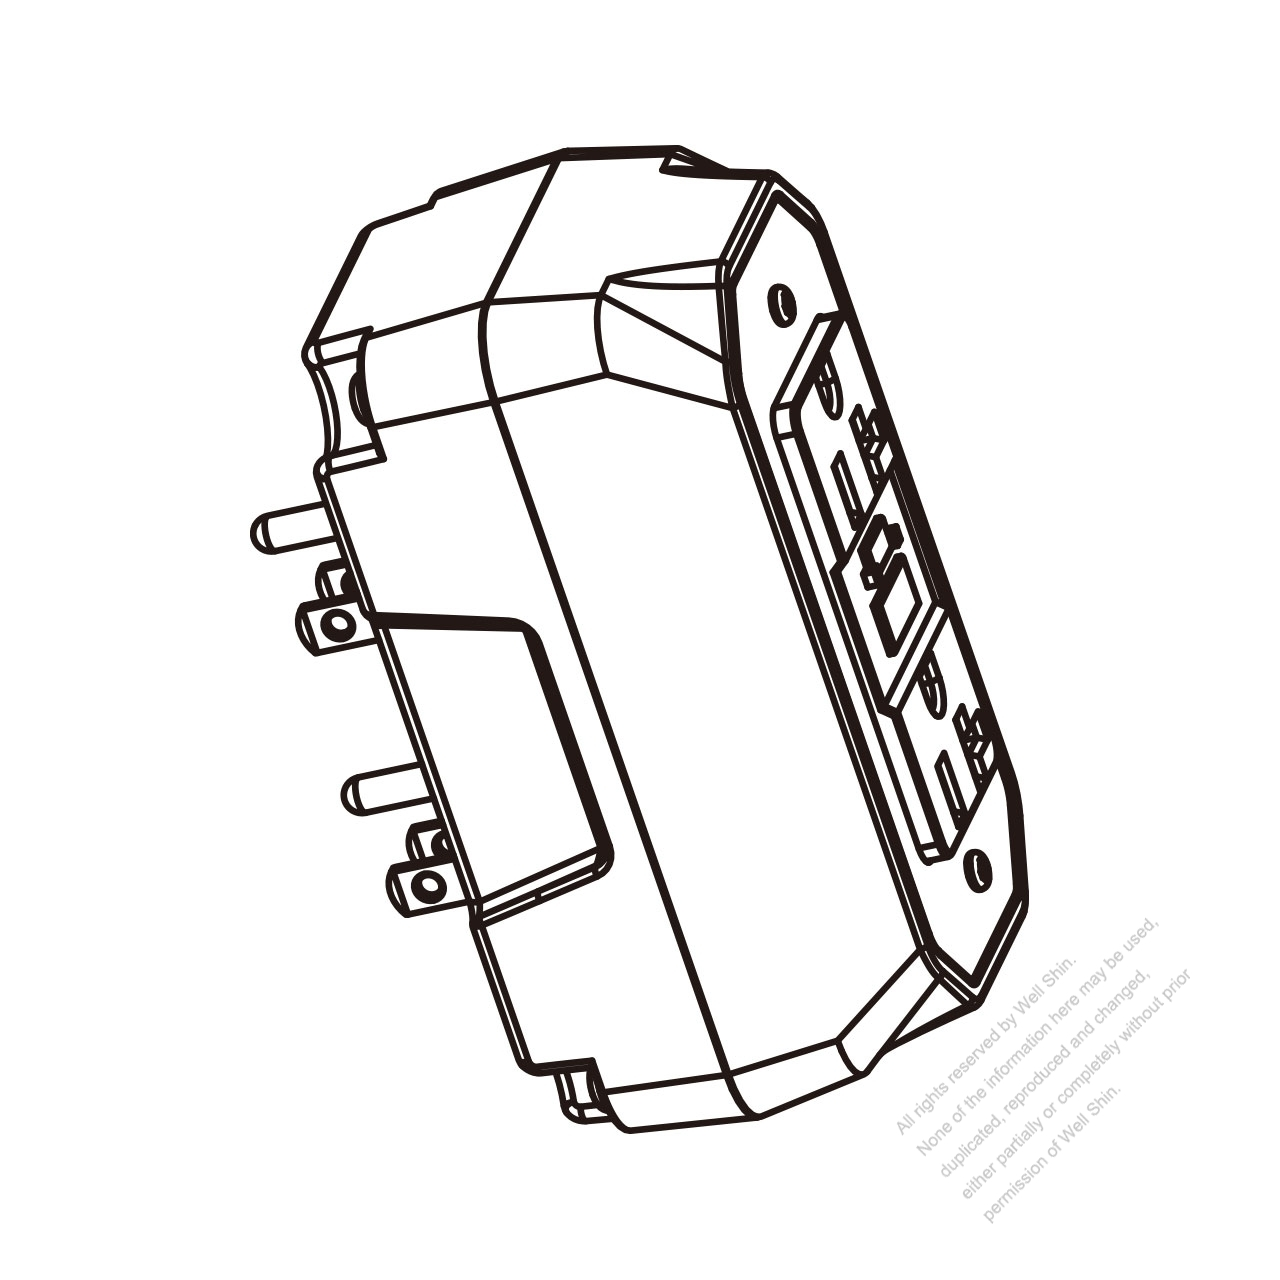 Bfb40256ac76dcba4c3l2Z electrical wiring duplex receptacle,wiring free download printable,Home Electrical Wiring 240 Volt